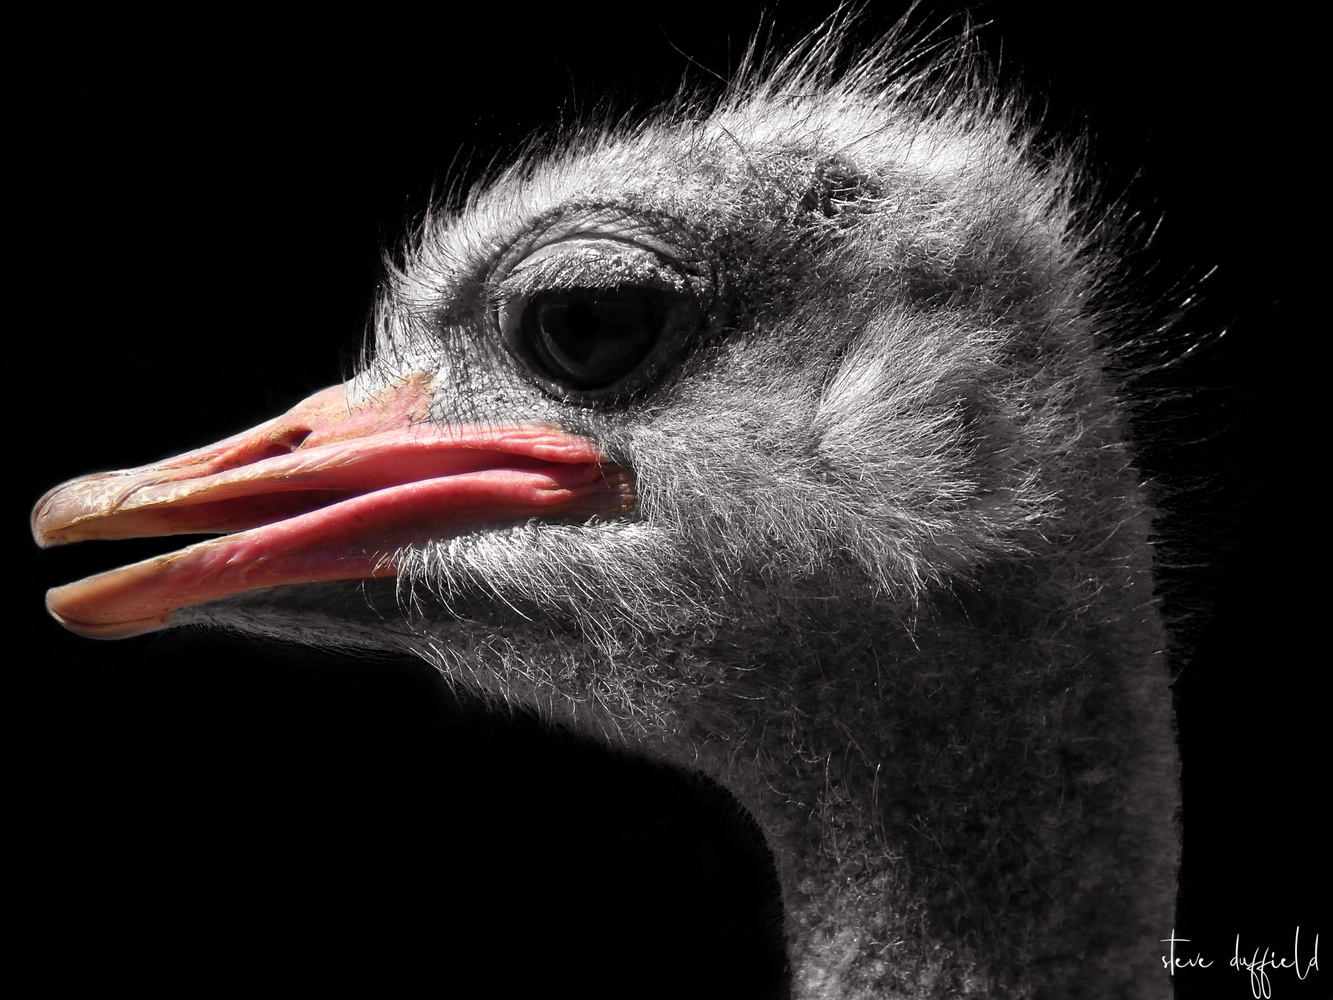 Common ostrich by stephen duffield